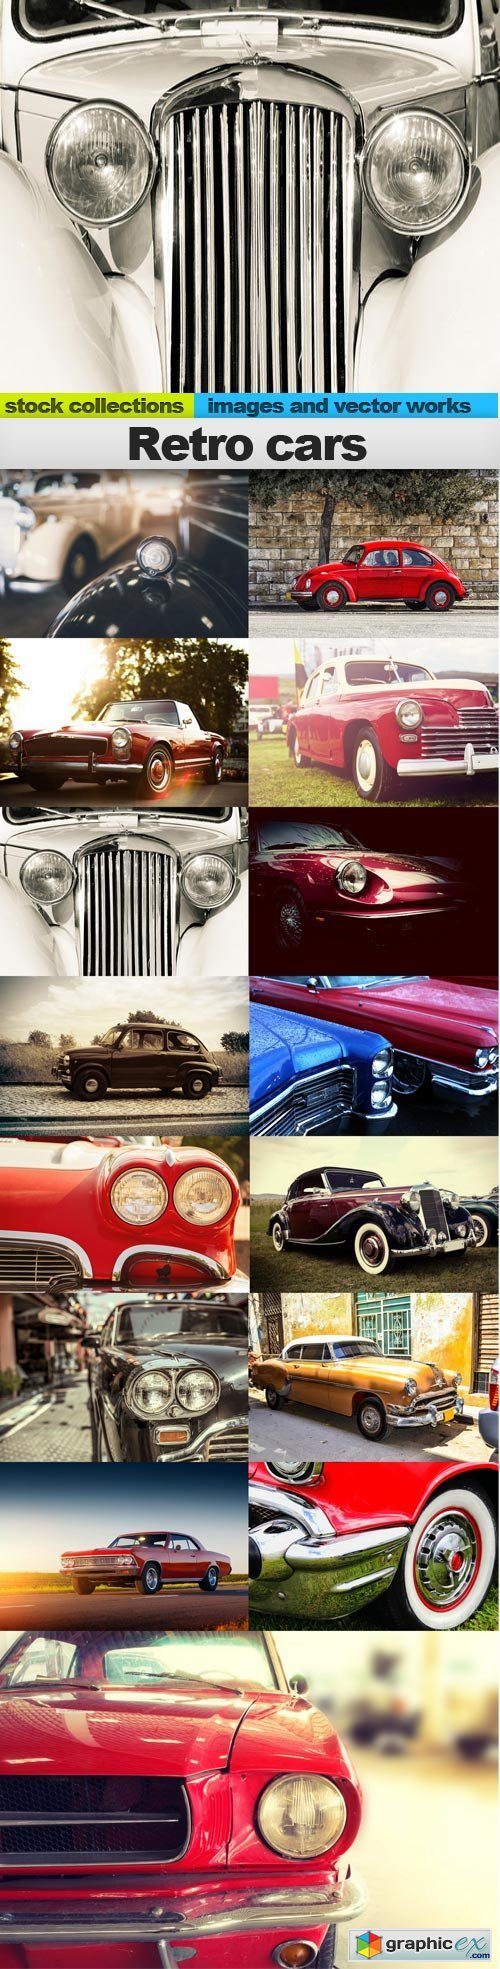 Retro cars, 15 x UHQ JPEG